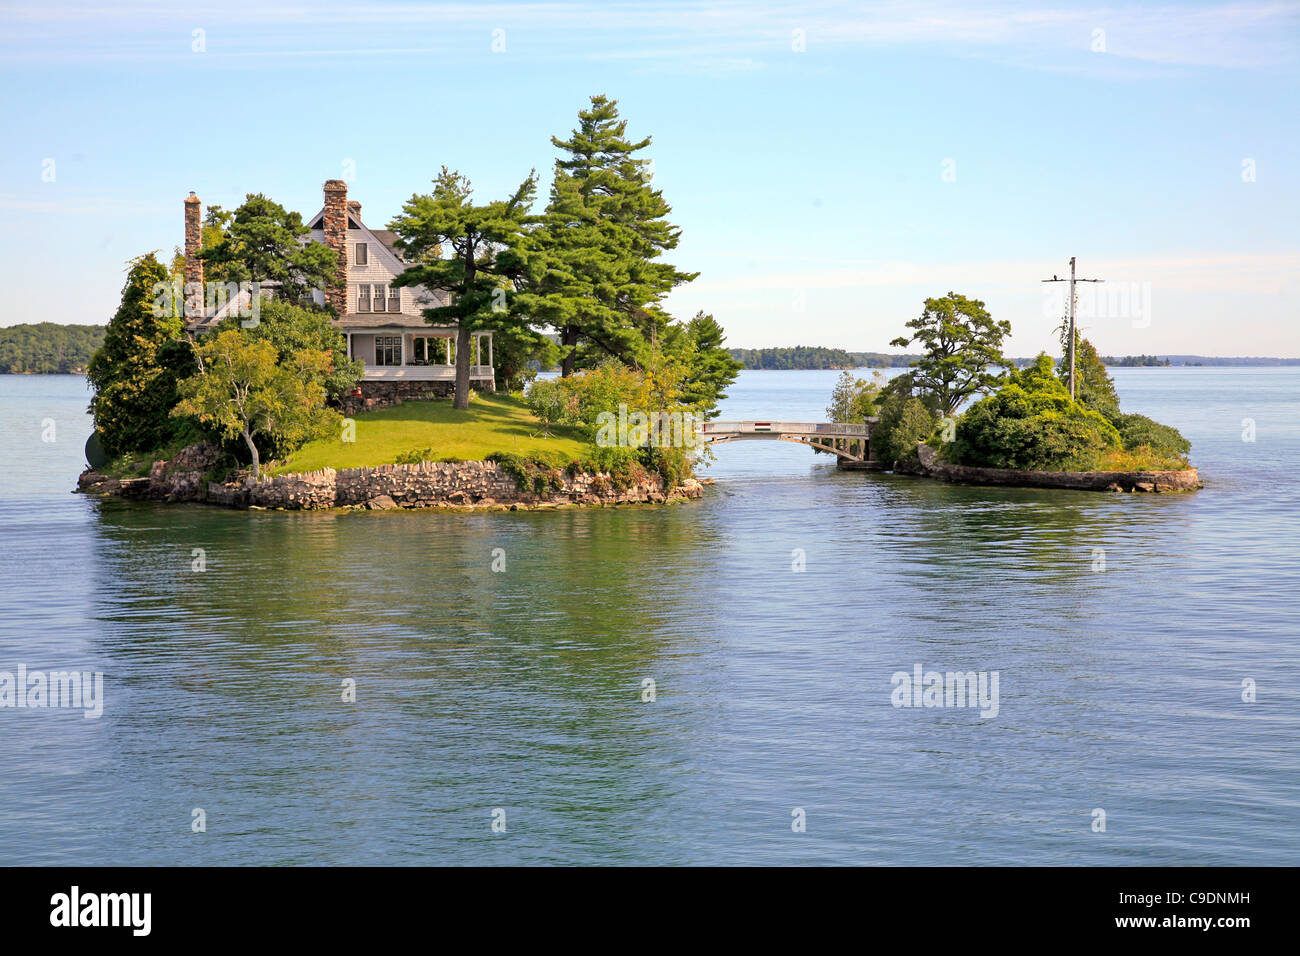 Homes;Cottages;Retreat;on remote Islands and Archipelago in Sweden and on  Thousand islands in Ontario;Canada